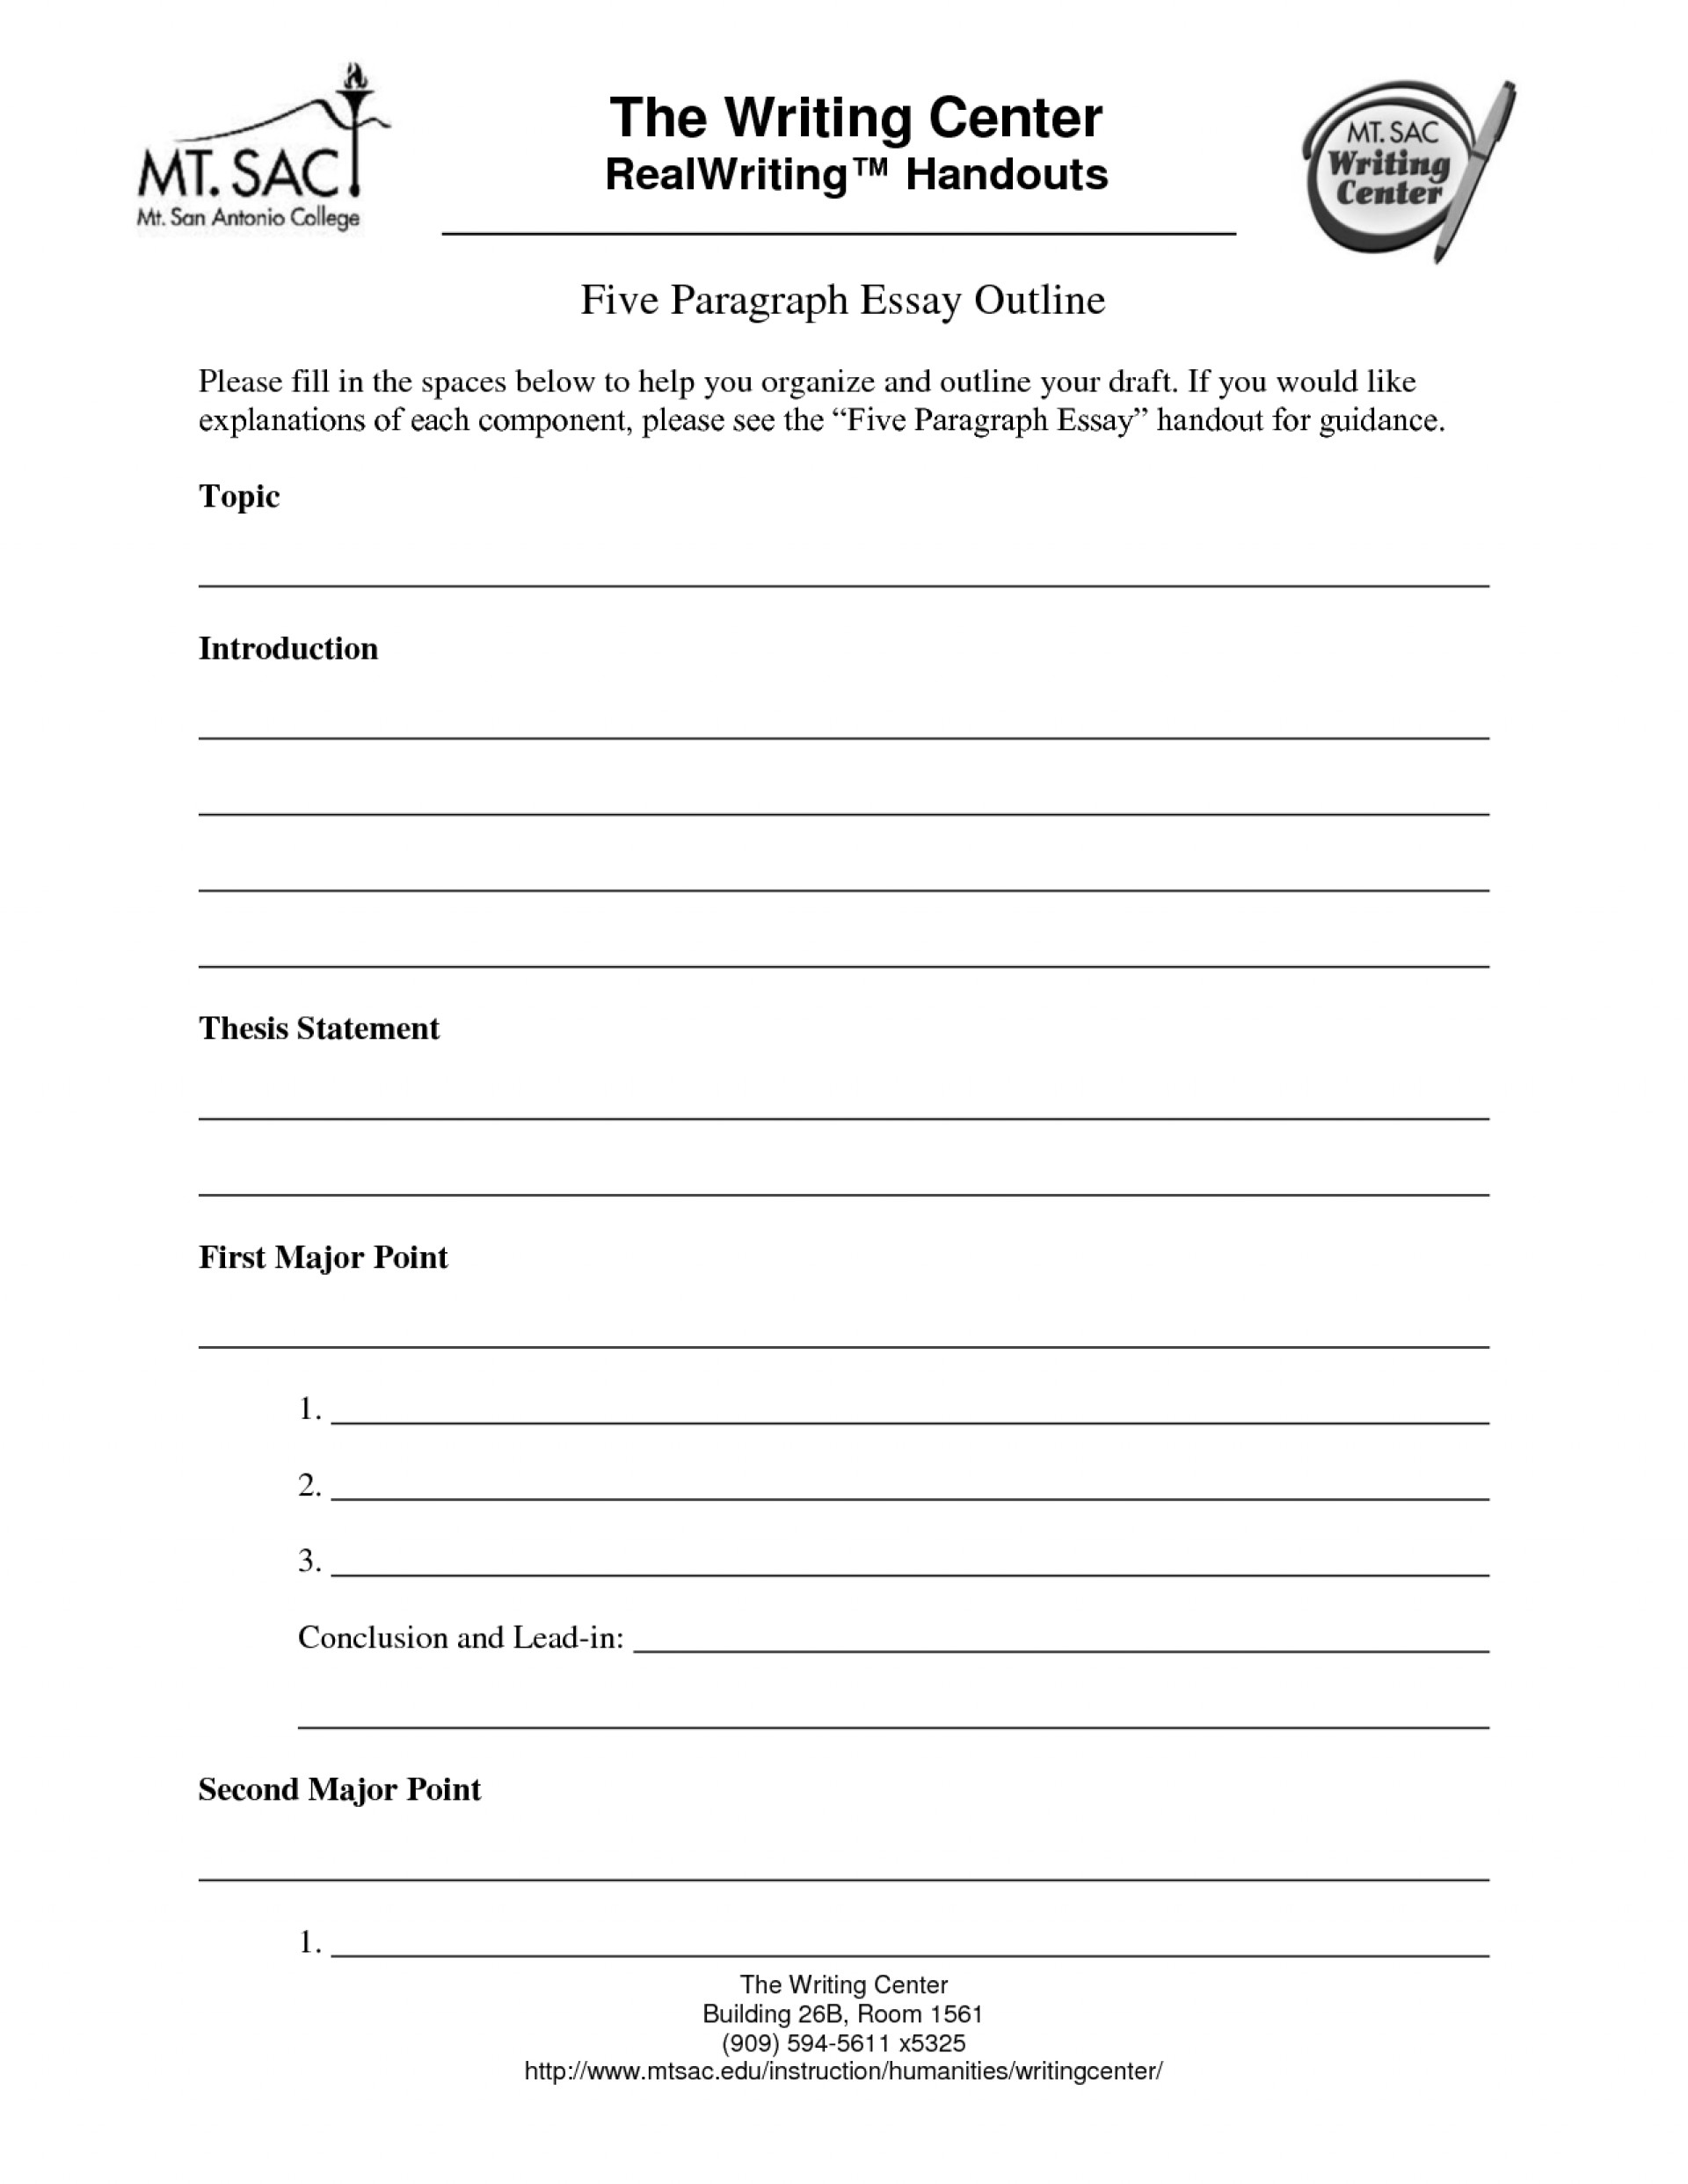 017 Five Paragraph Essay Outline Template 295989 Impressive 5 Printable Worksheets Example 1920